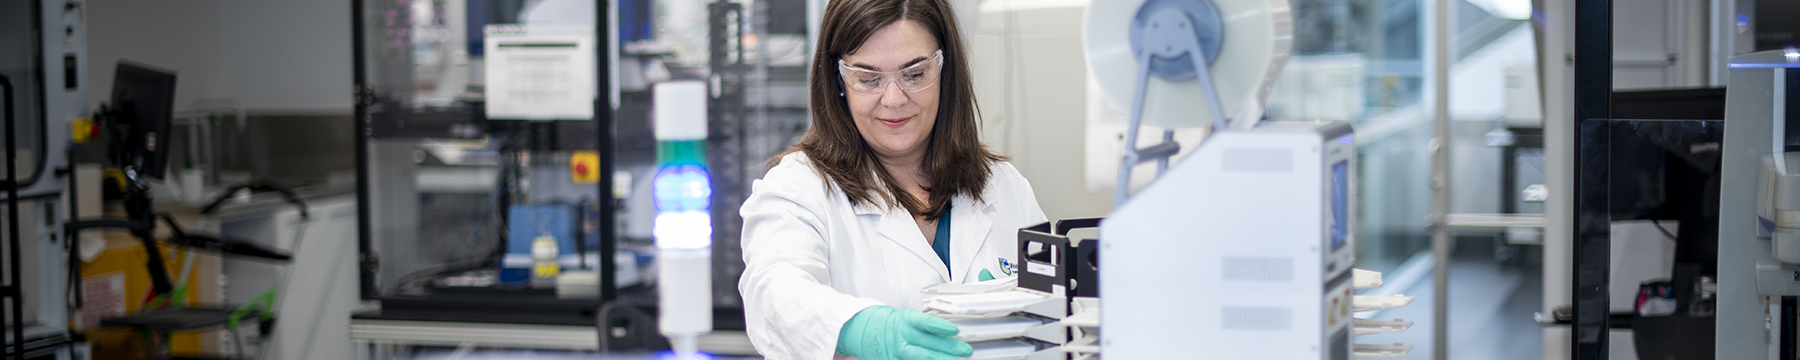 Scientist using screening technology